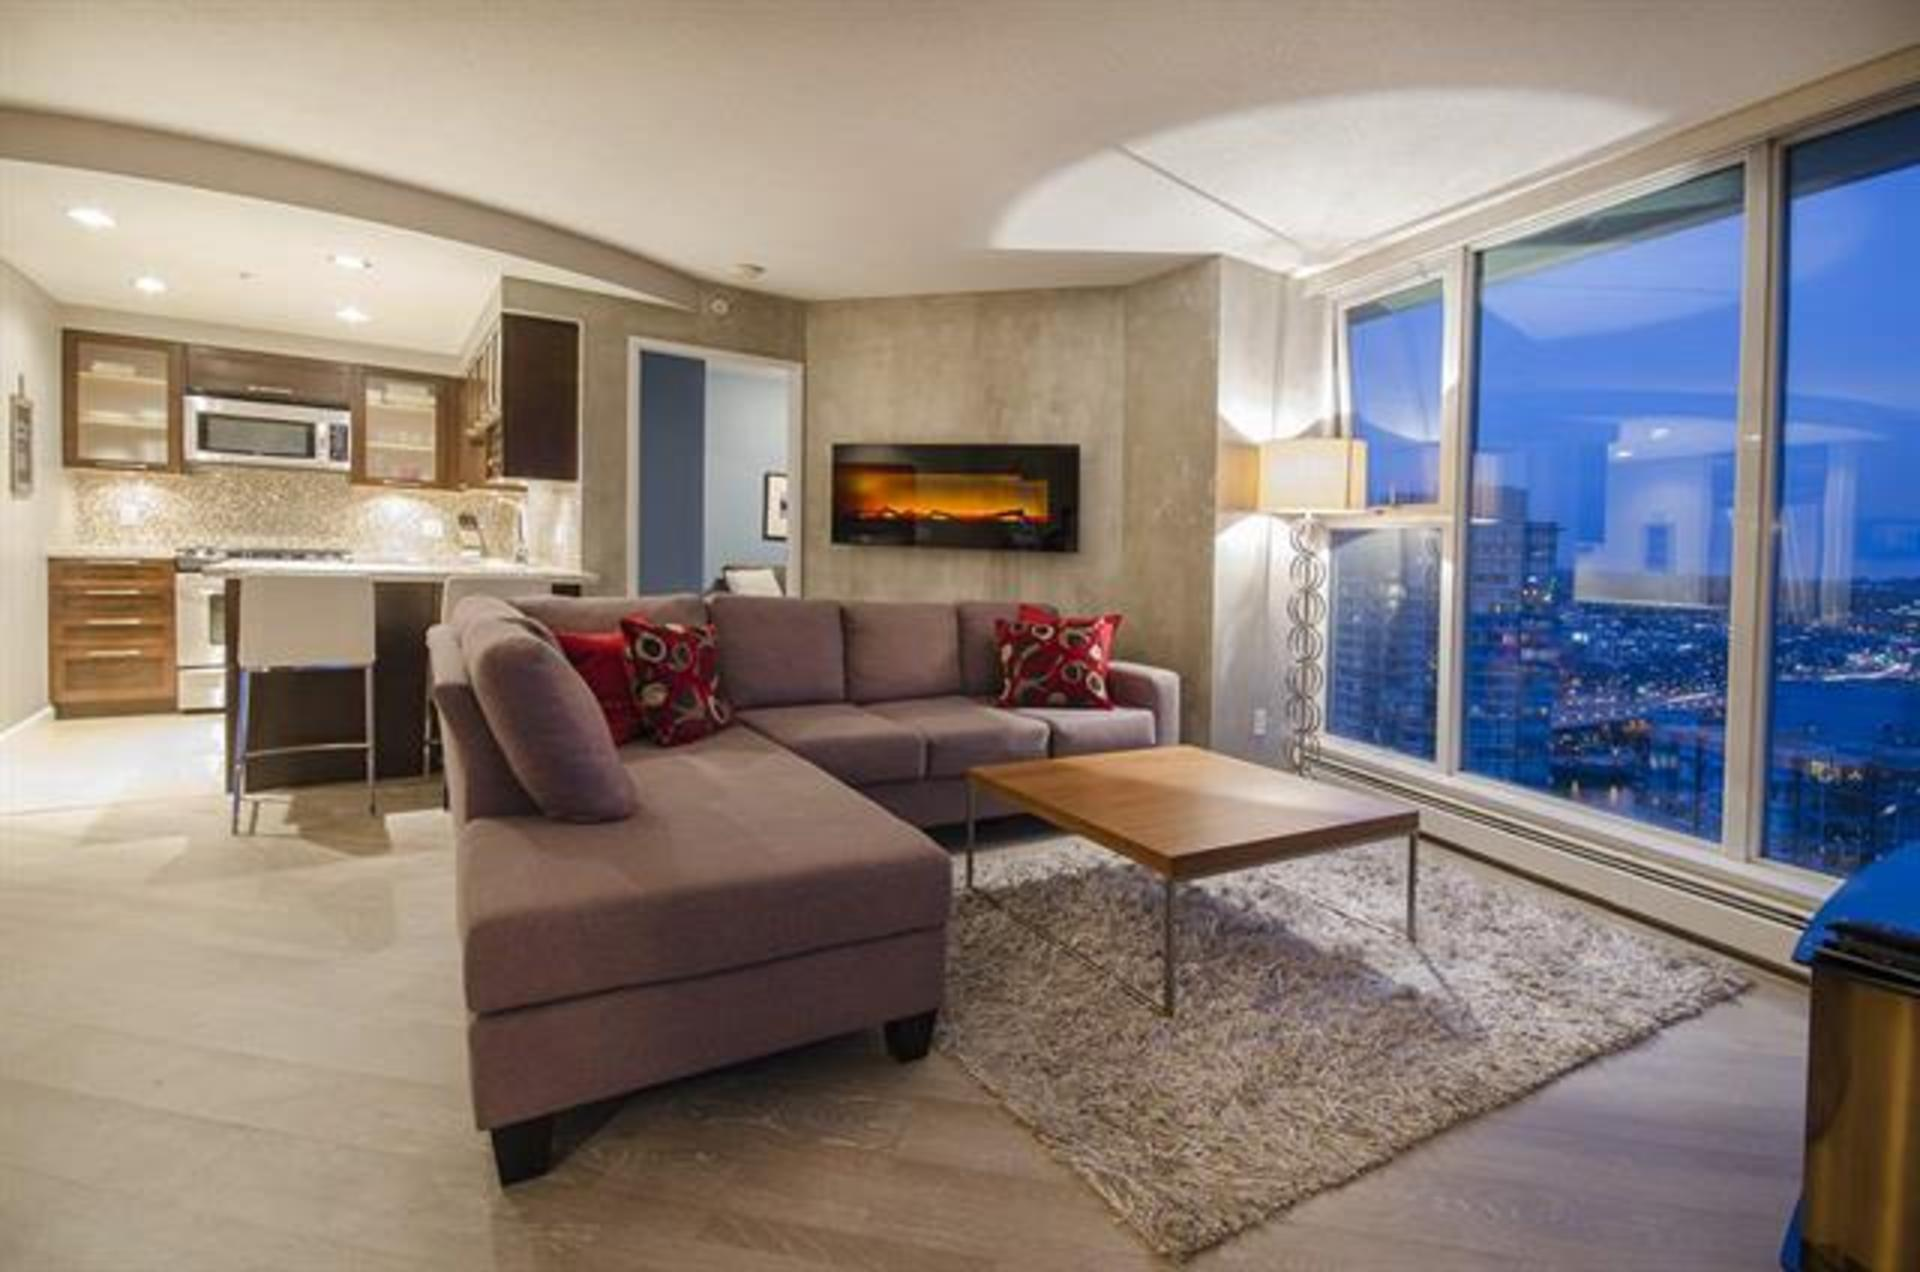 262076089-3 at 3603 - 1009 Expo Boulevard, Yaletown, Vancouver West